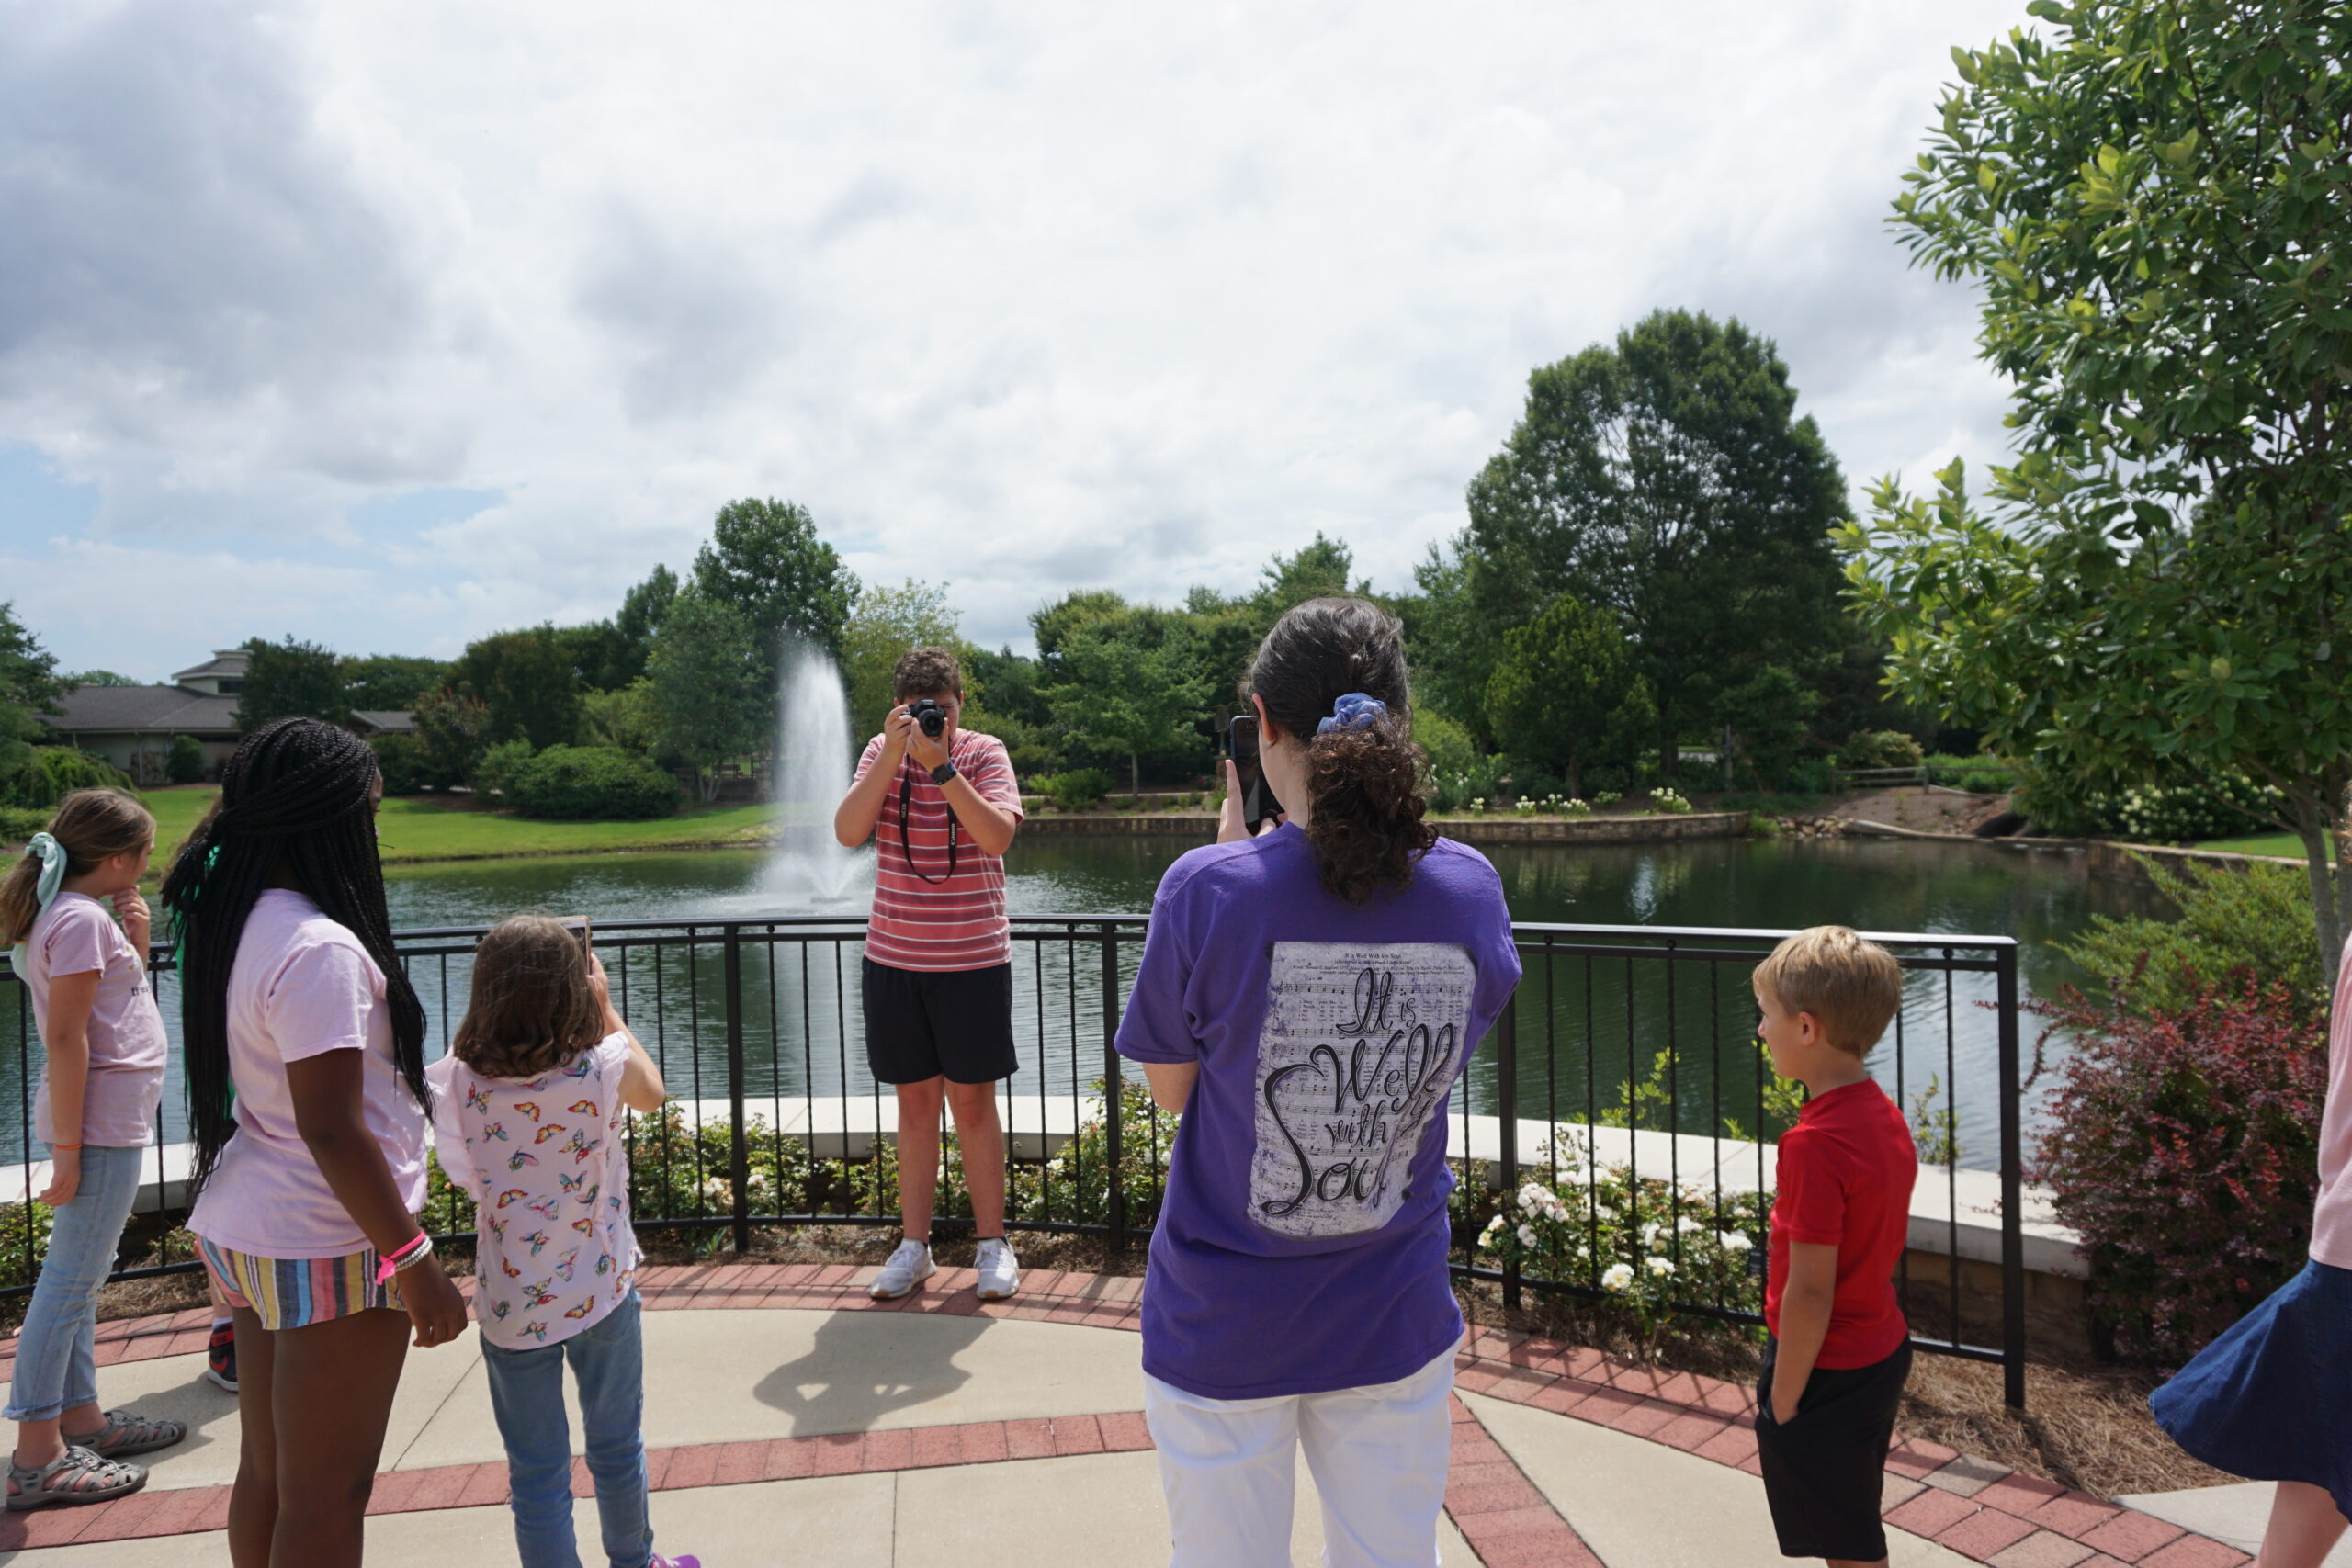 cousin camp ideas - Cousins photographing each other at a botanical garden.